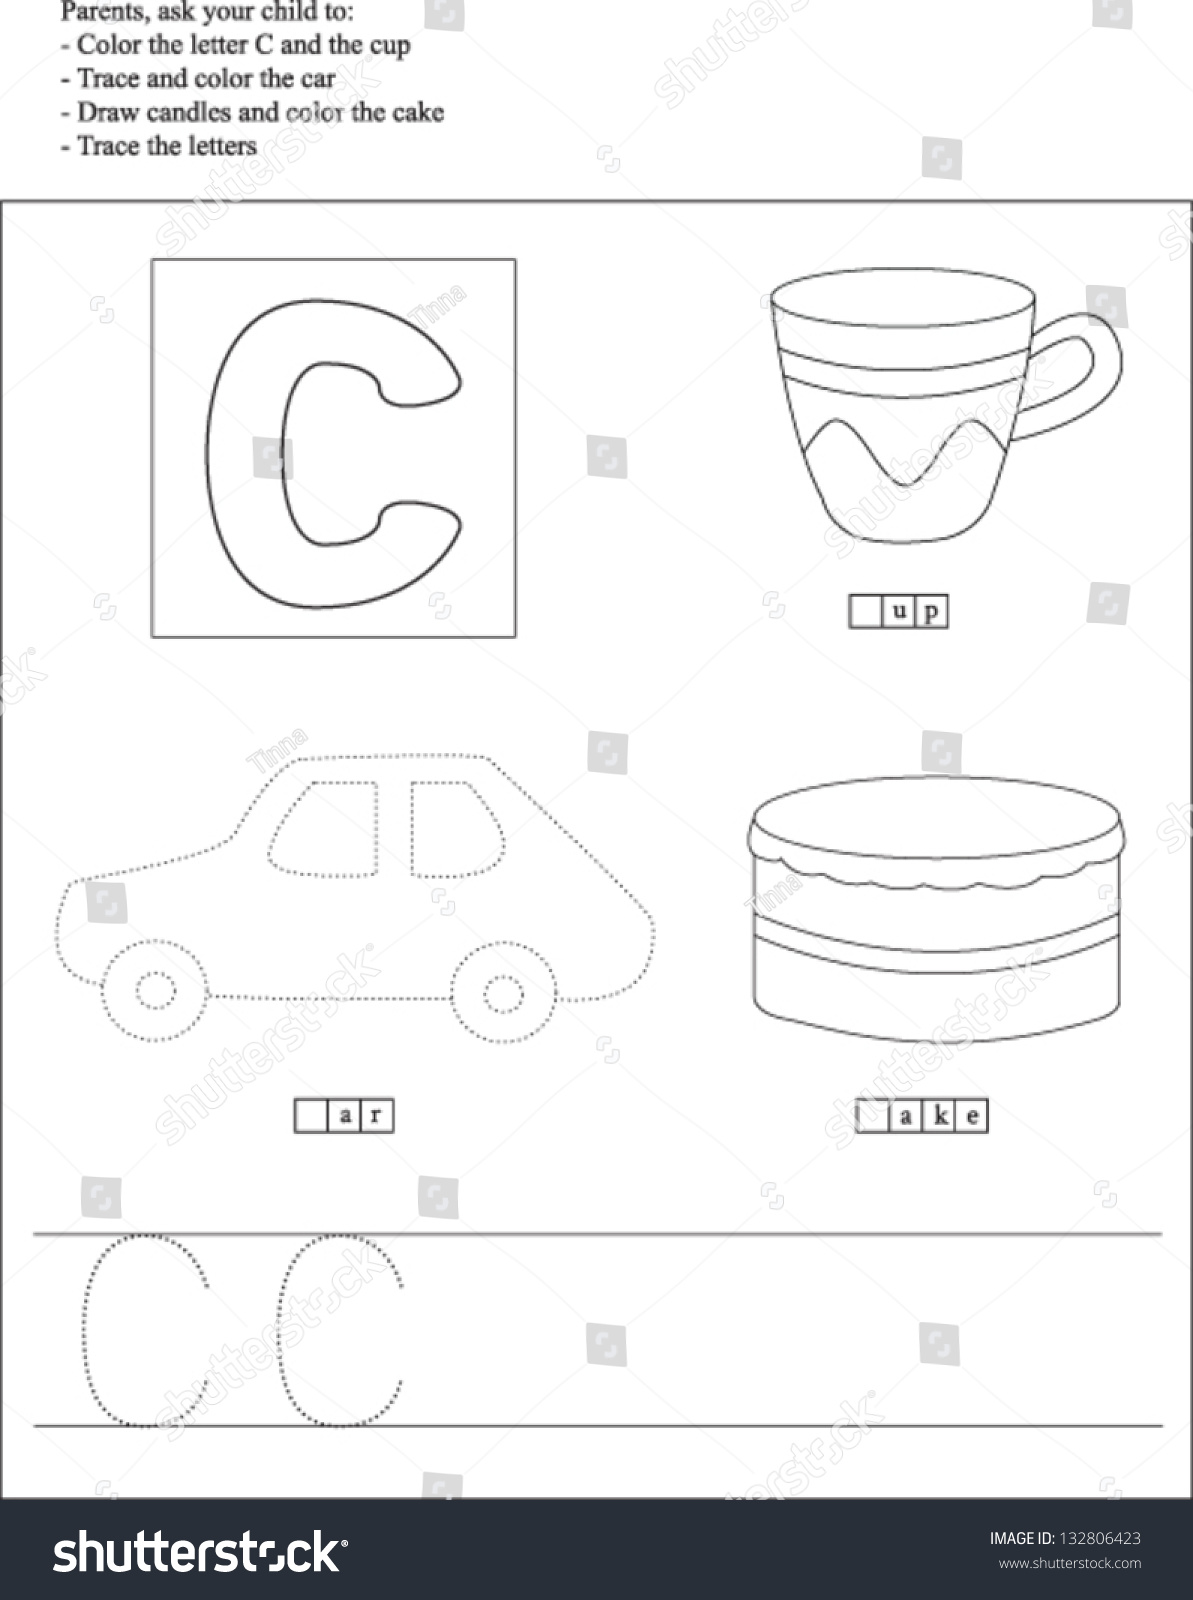 Trace And Color Letter C Worksheet For Preschoolers